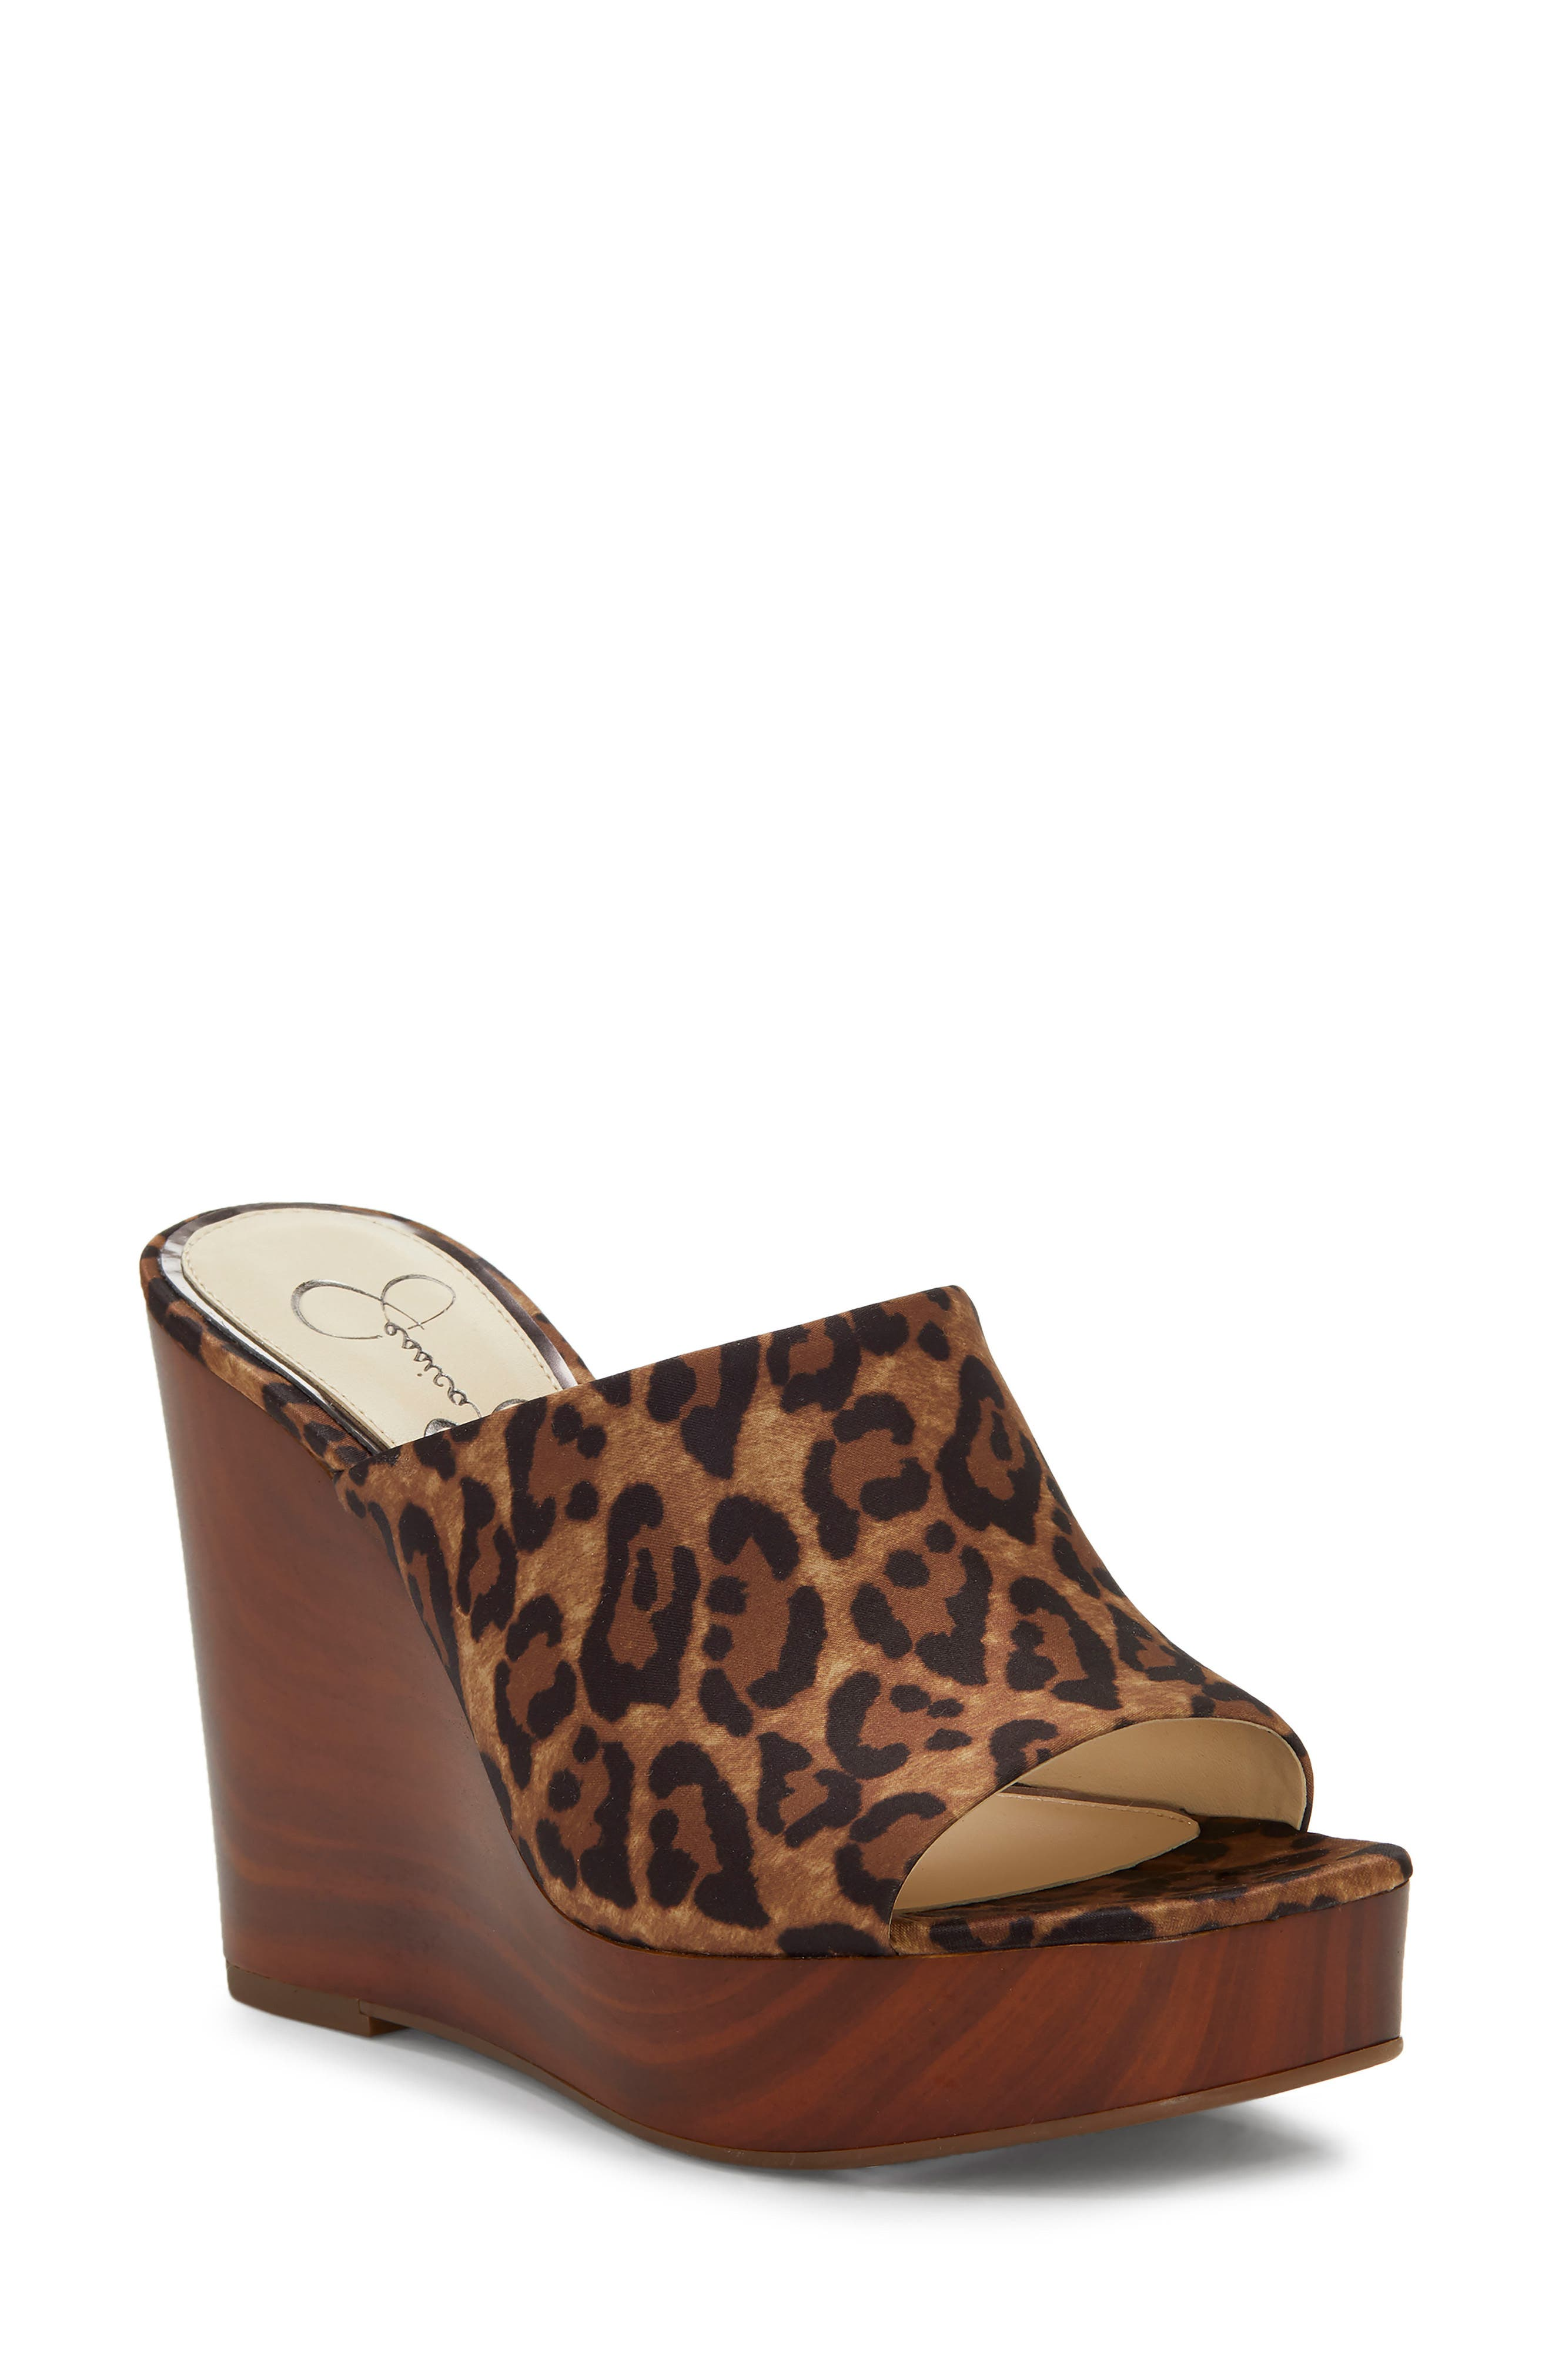 Shantelle Wedge Slide Sandal, Main, color, NATURAL FABRIC